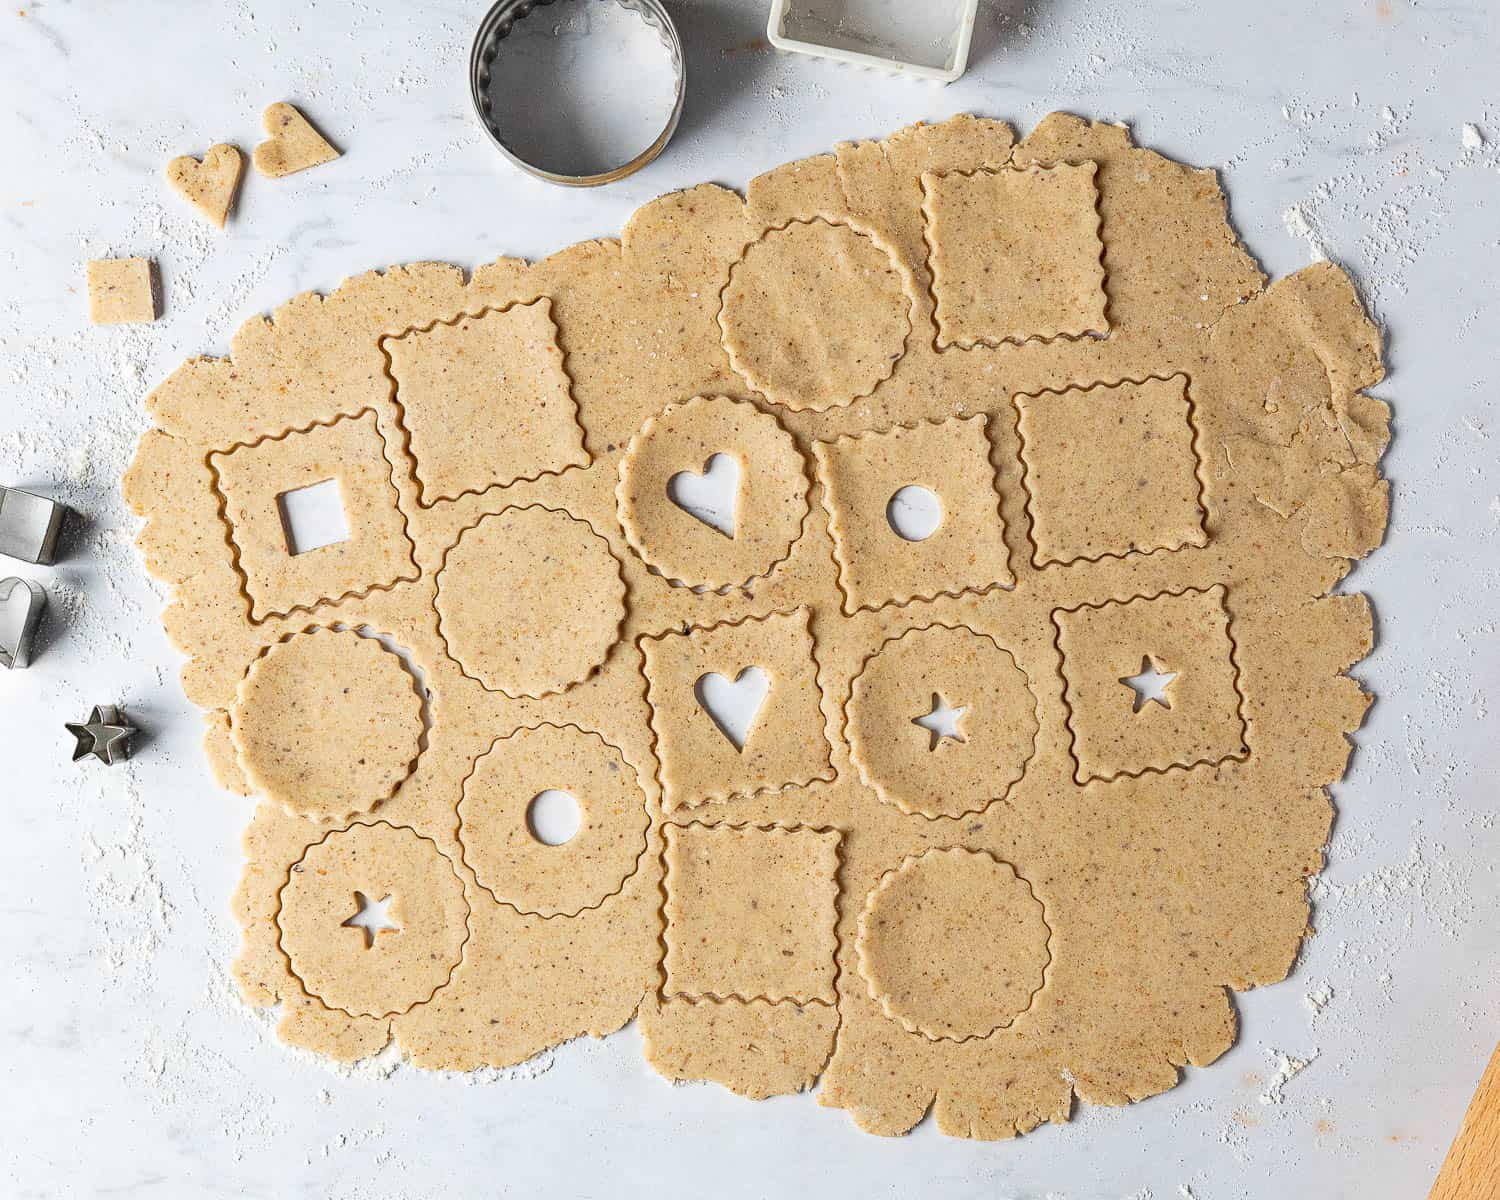 Step 3, rolling out the dough and cutting out the cookie shapes.